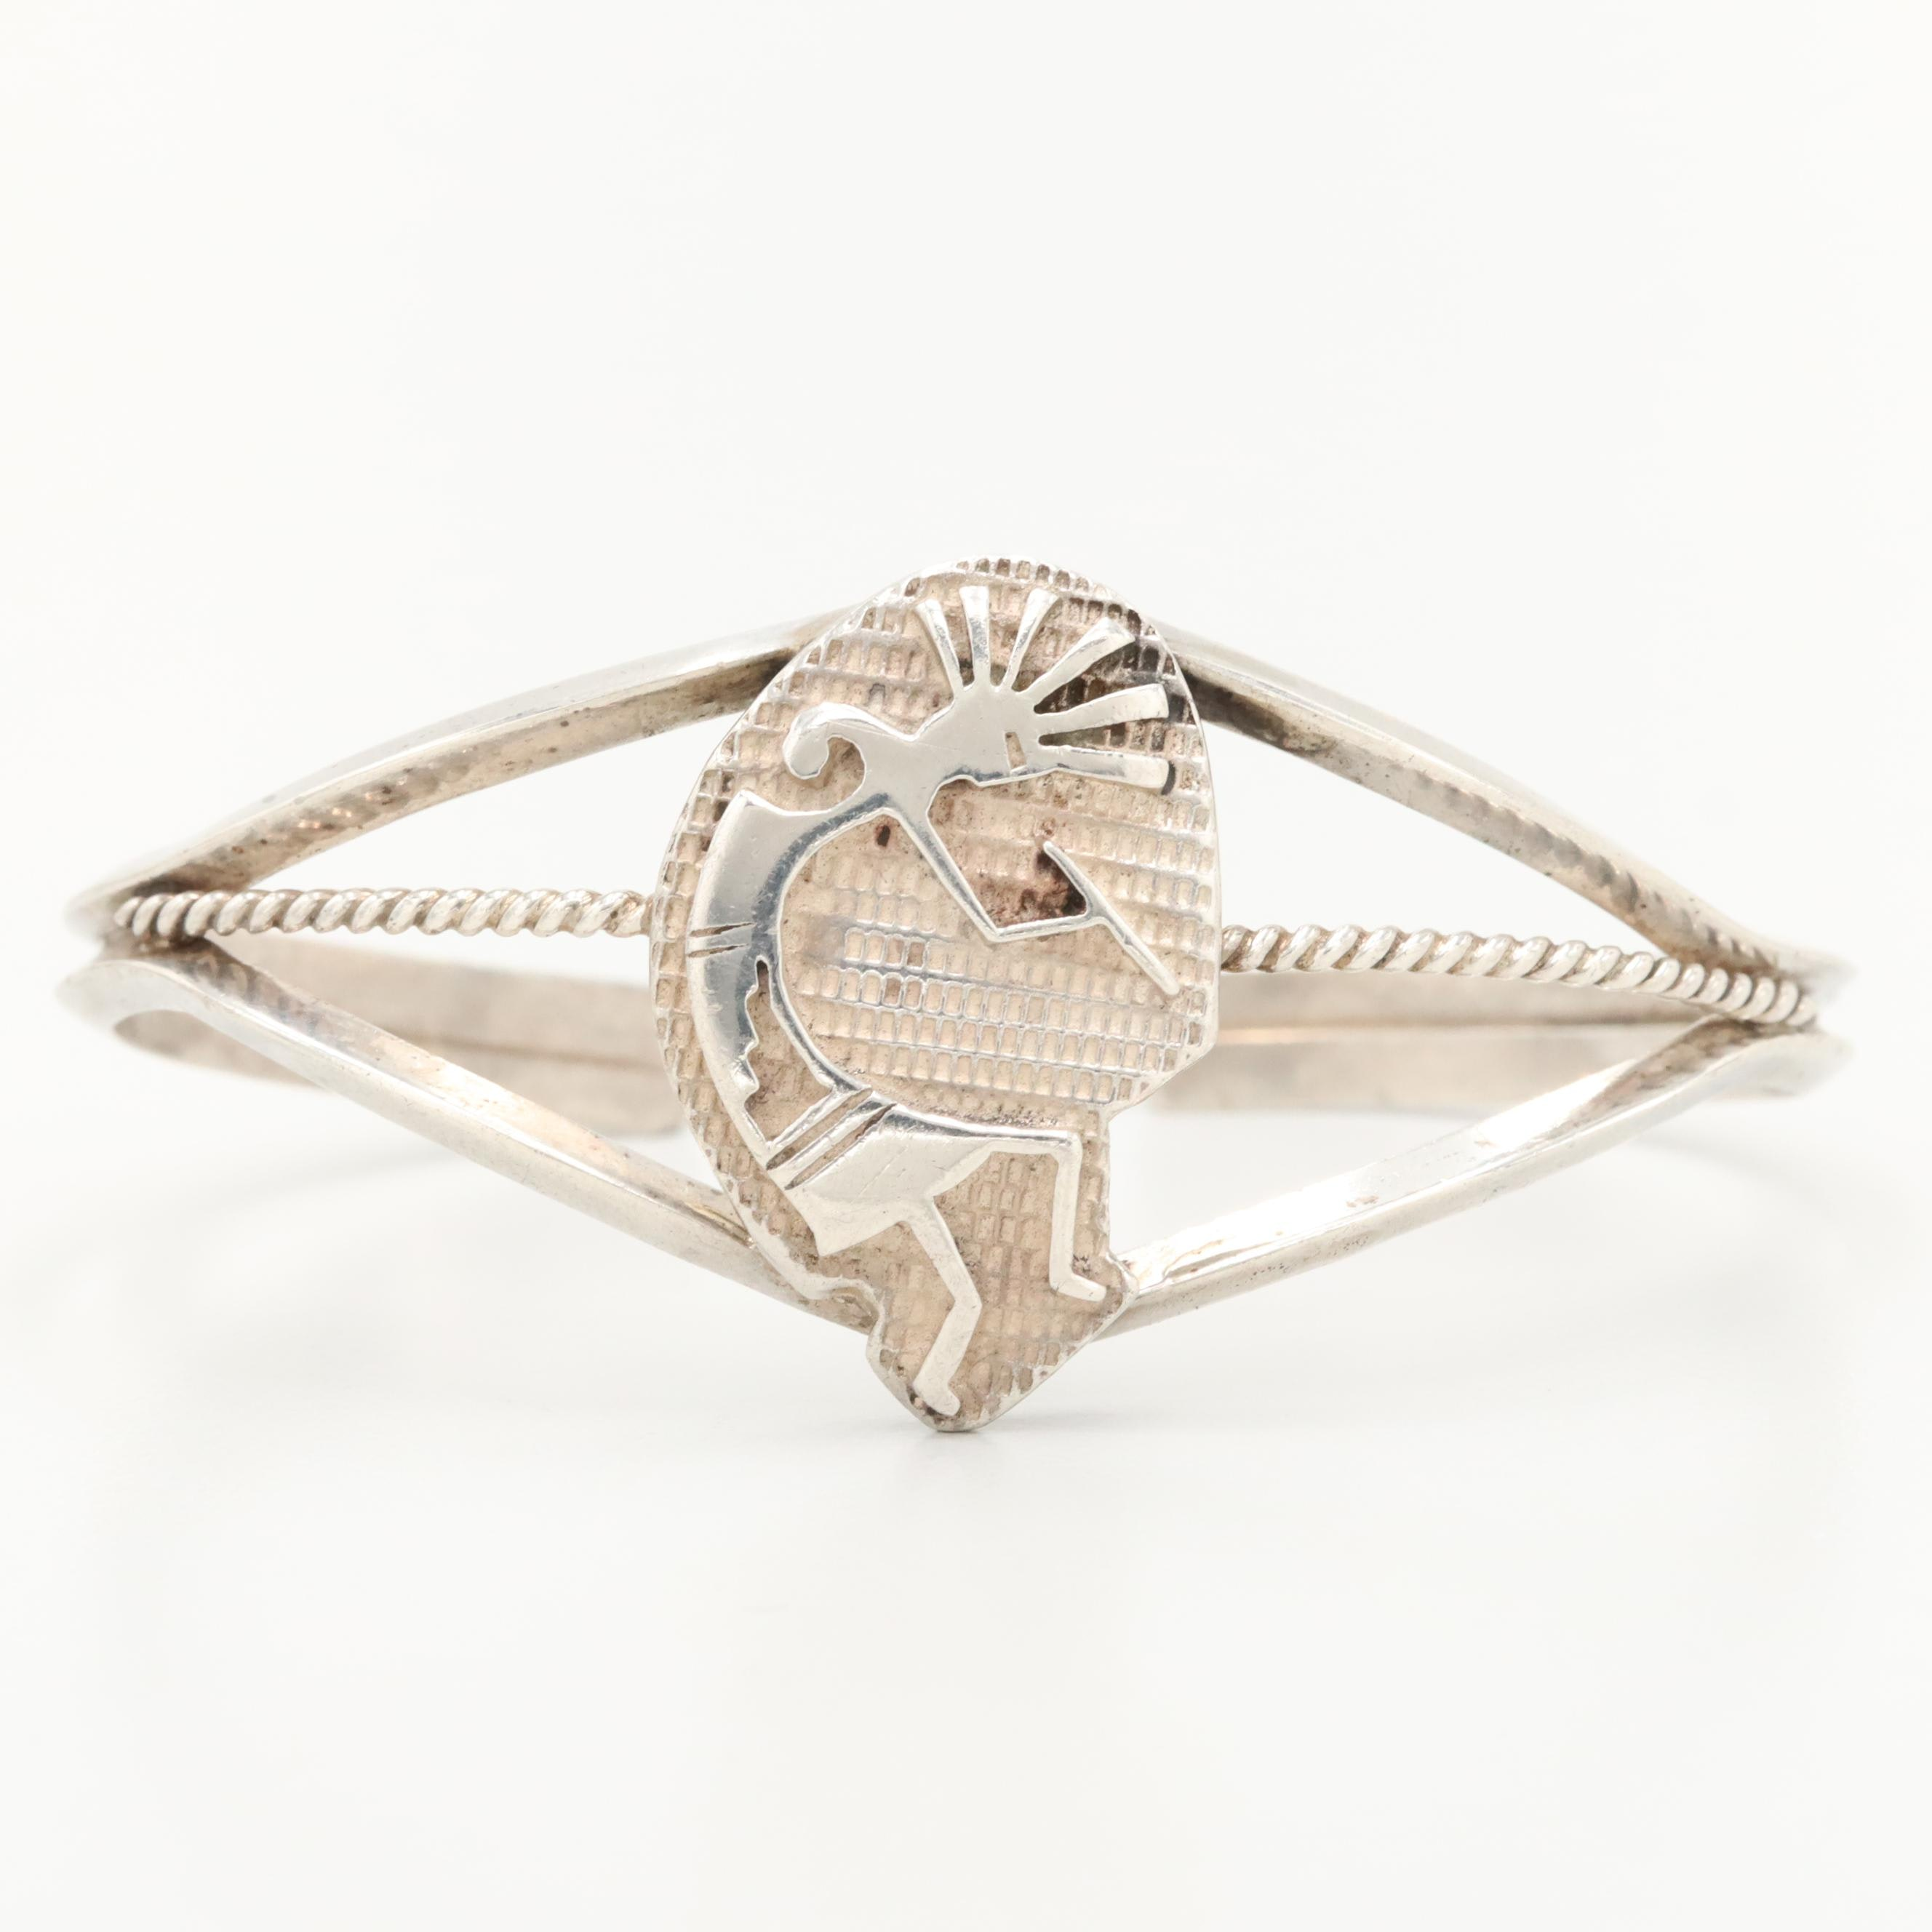 Southwestern Style Sterling Silver Cuff Bracelet with Kokopelli Accent